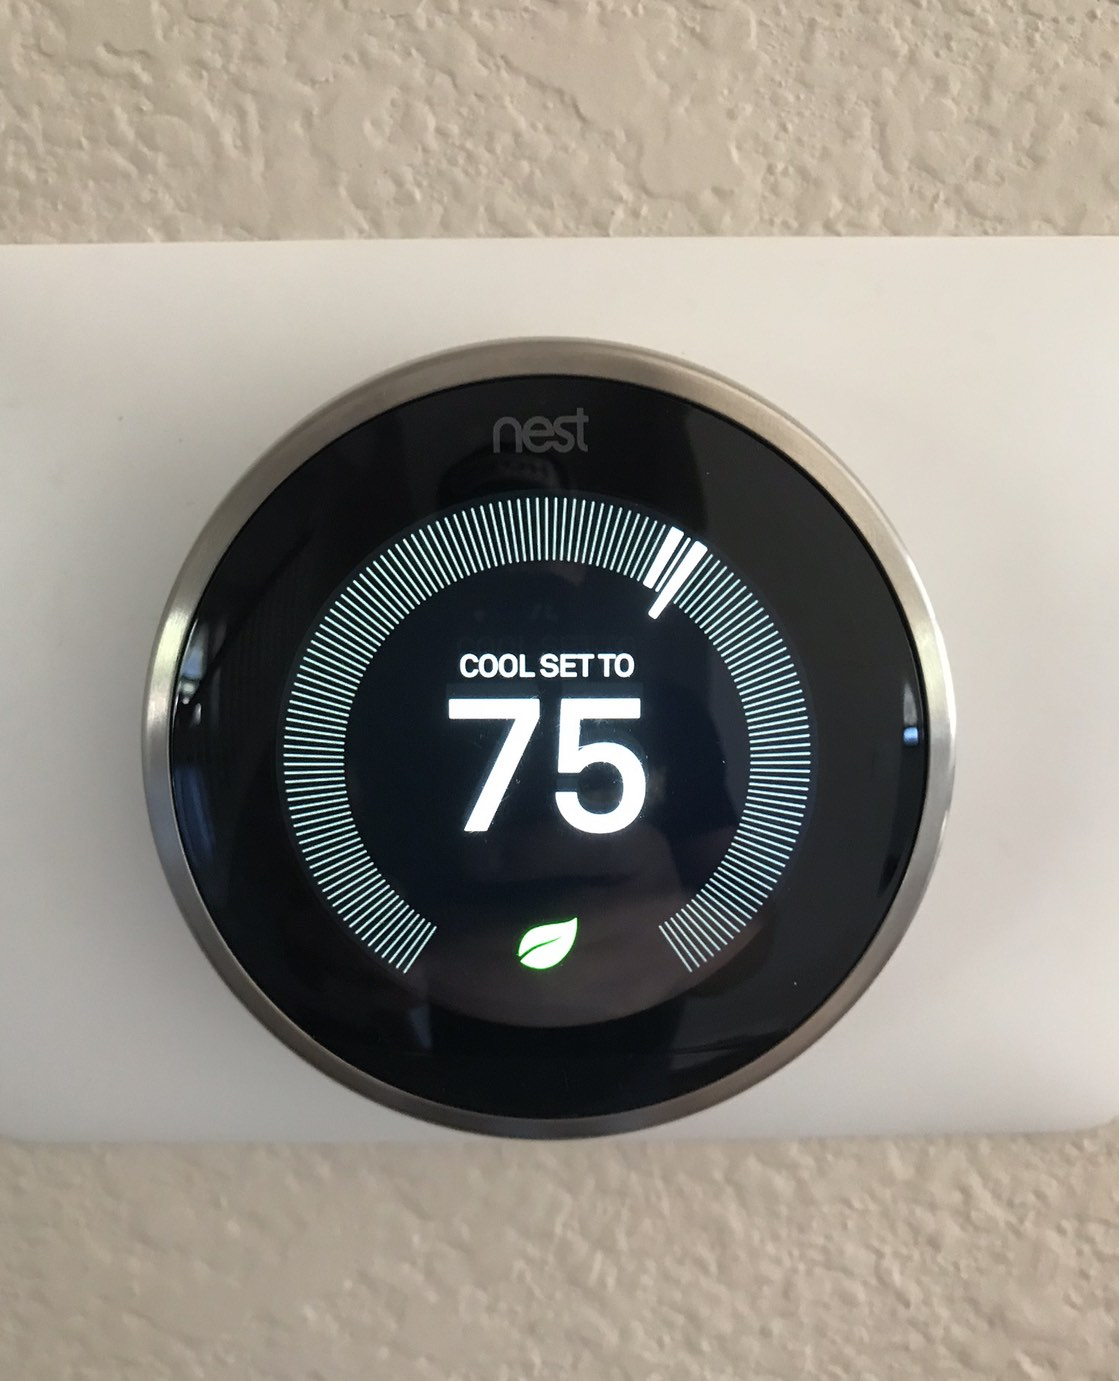 Nest smart Home is a great upgrade to make when selling your home